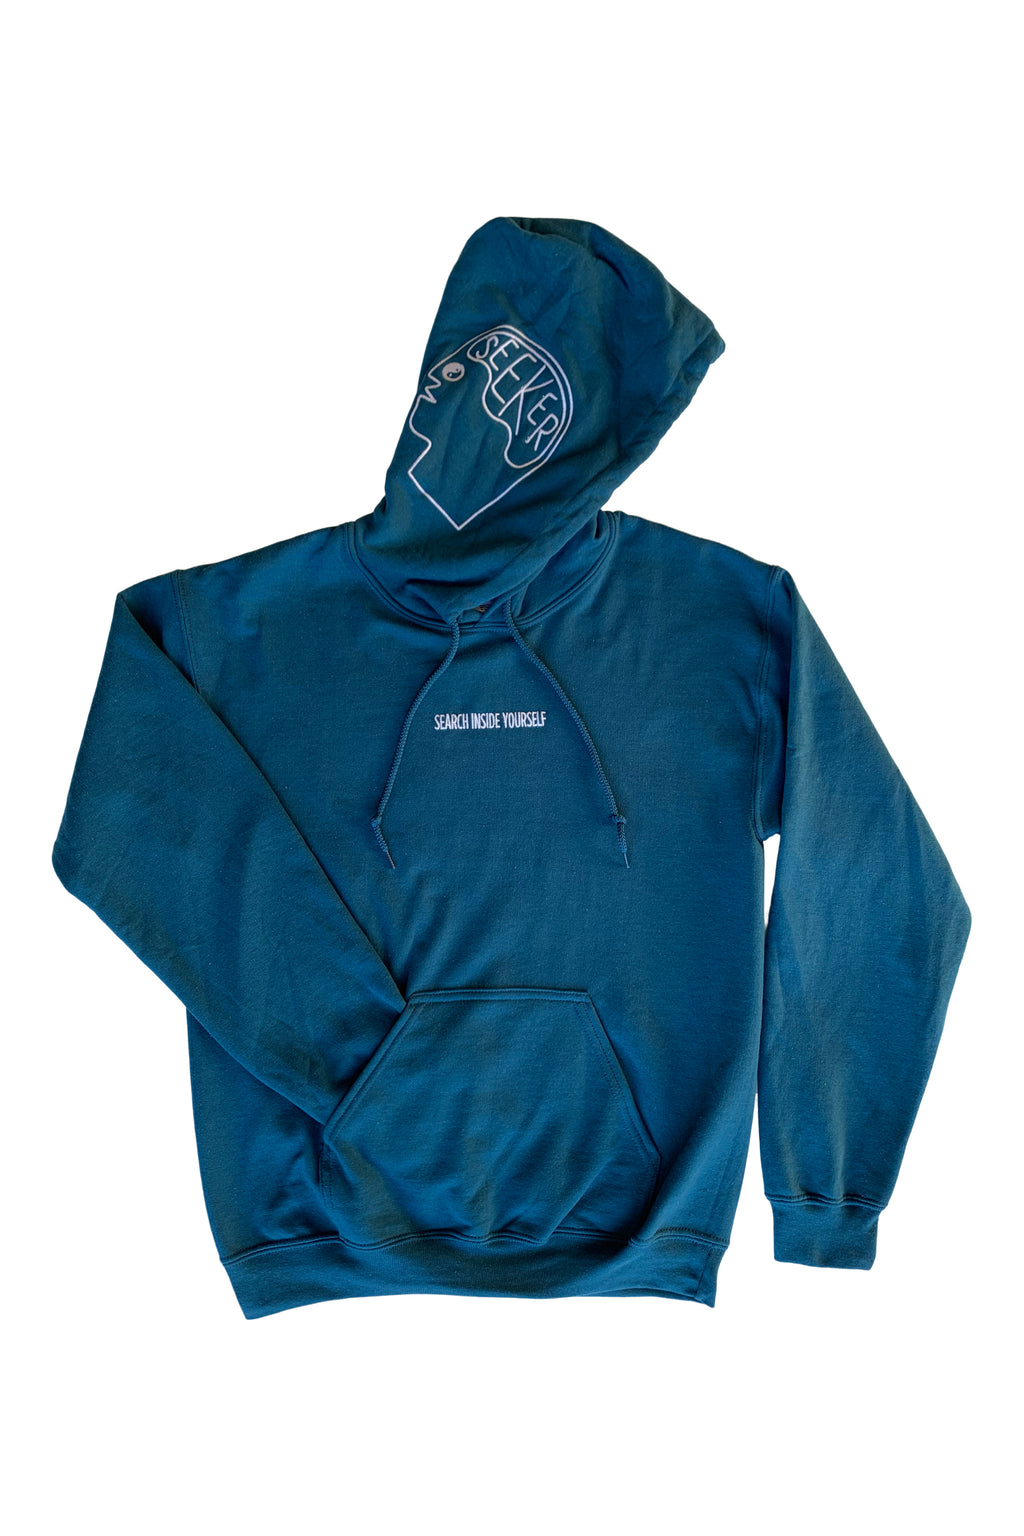 Search Inside Yourself Hoodie in Legion Blue